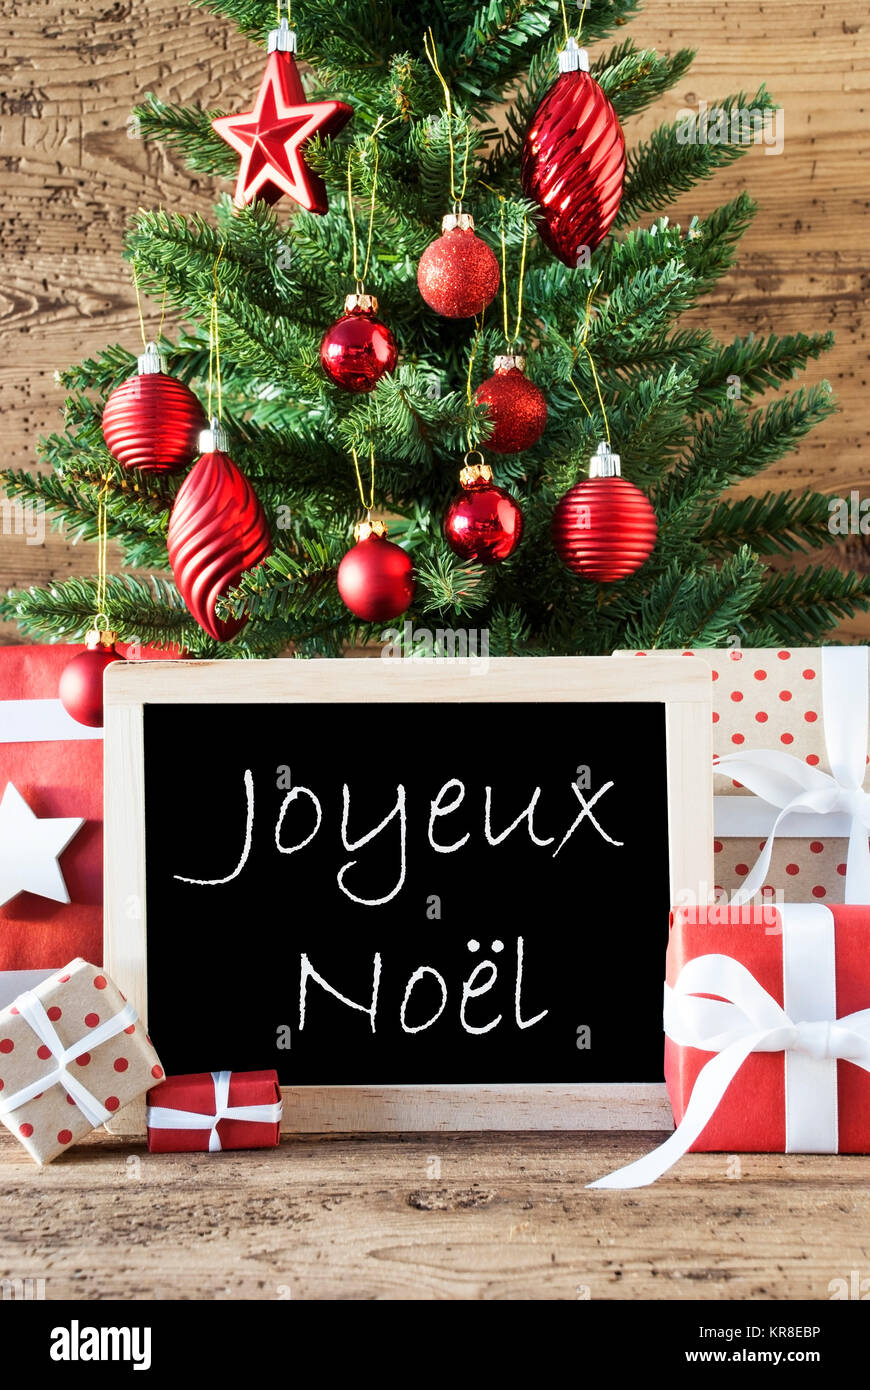 Colorful christmas card for seasons greetings christmas tree with colorful christmas card for seasons greetings christmas tree with balls gifts or presents in the front of wooden background chalkboard with french text kristyandbryce Choice Image